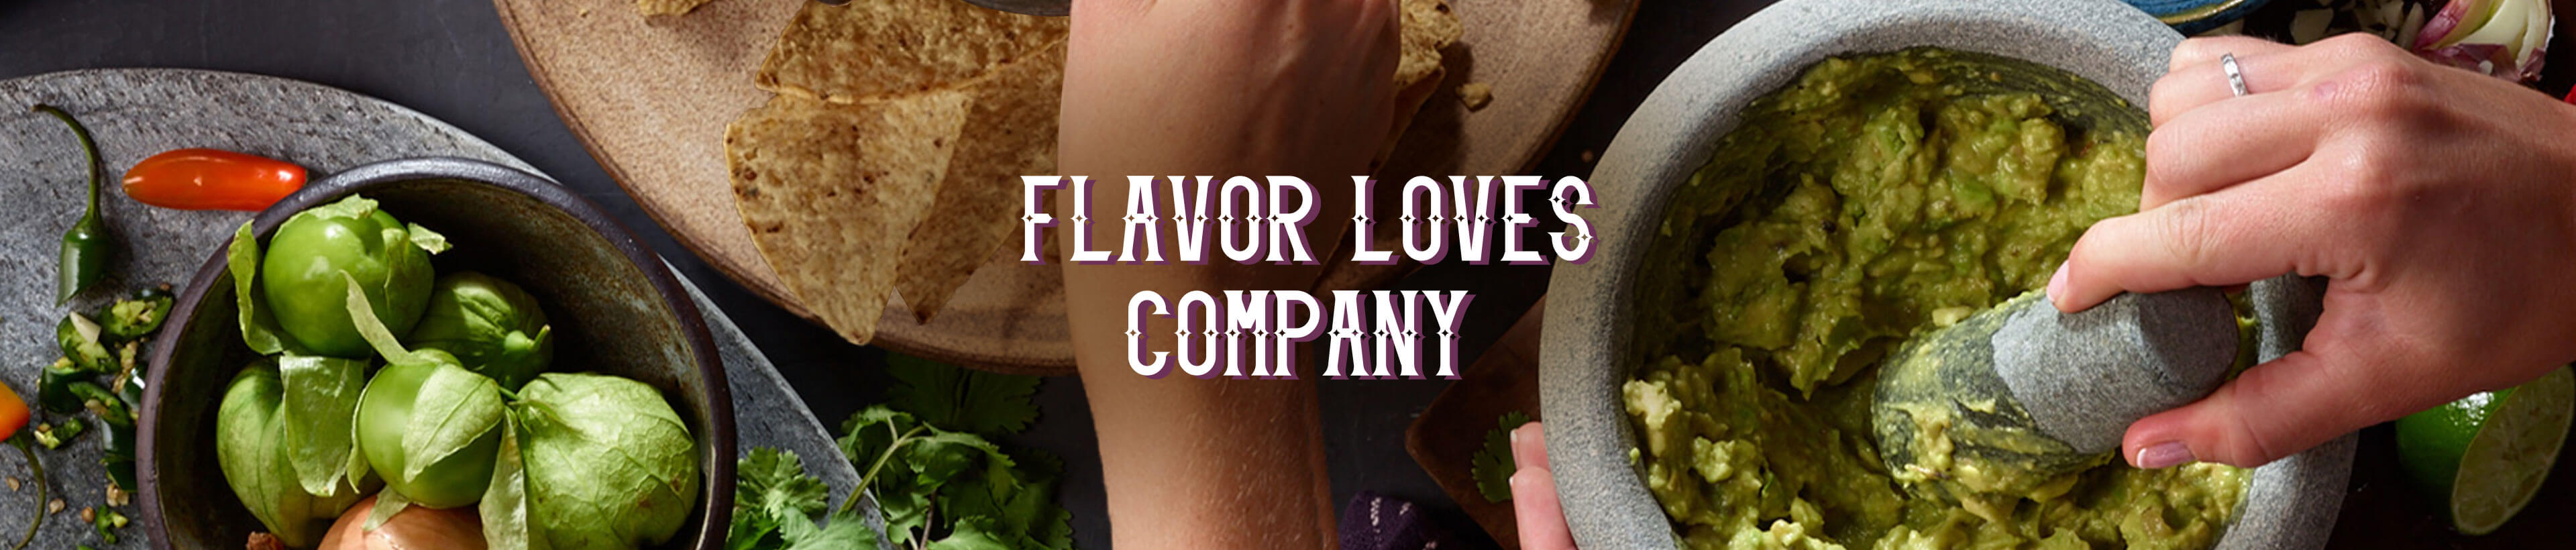 Flavor Loves Company